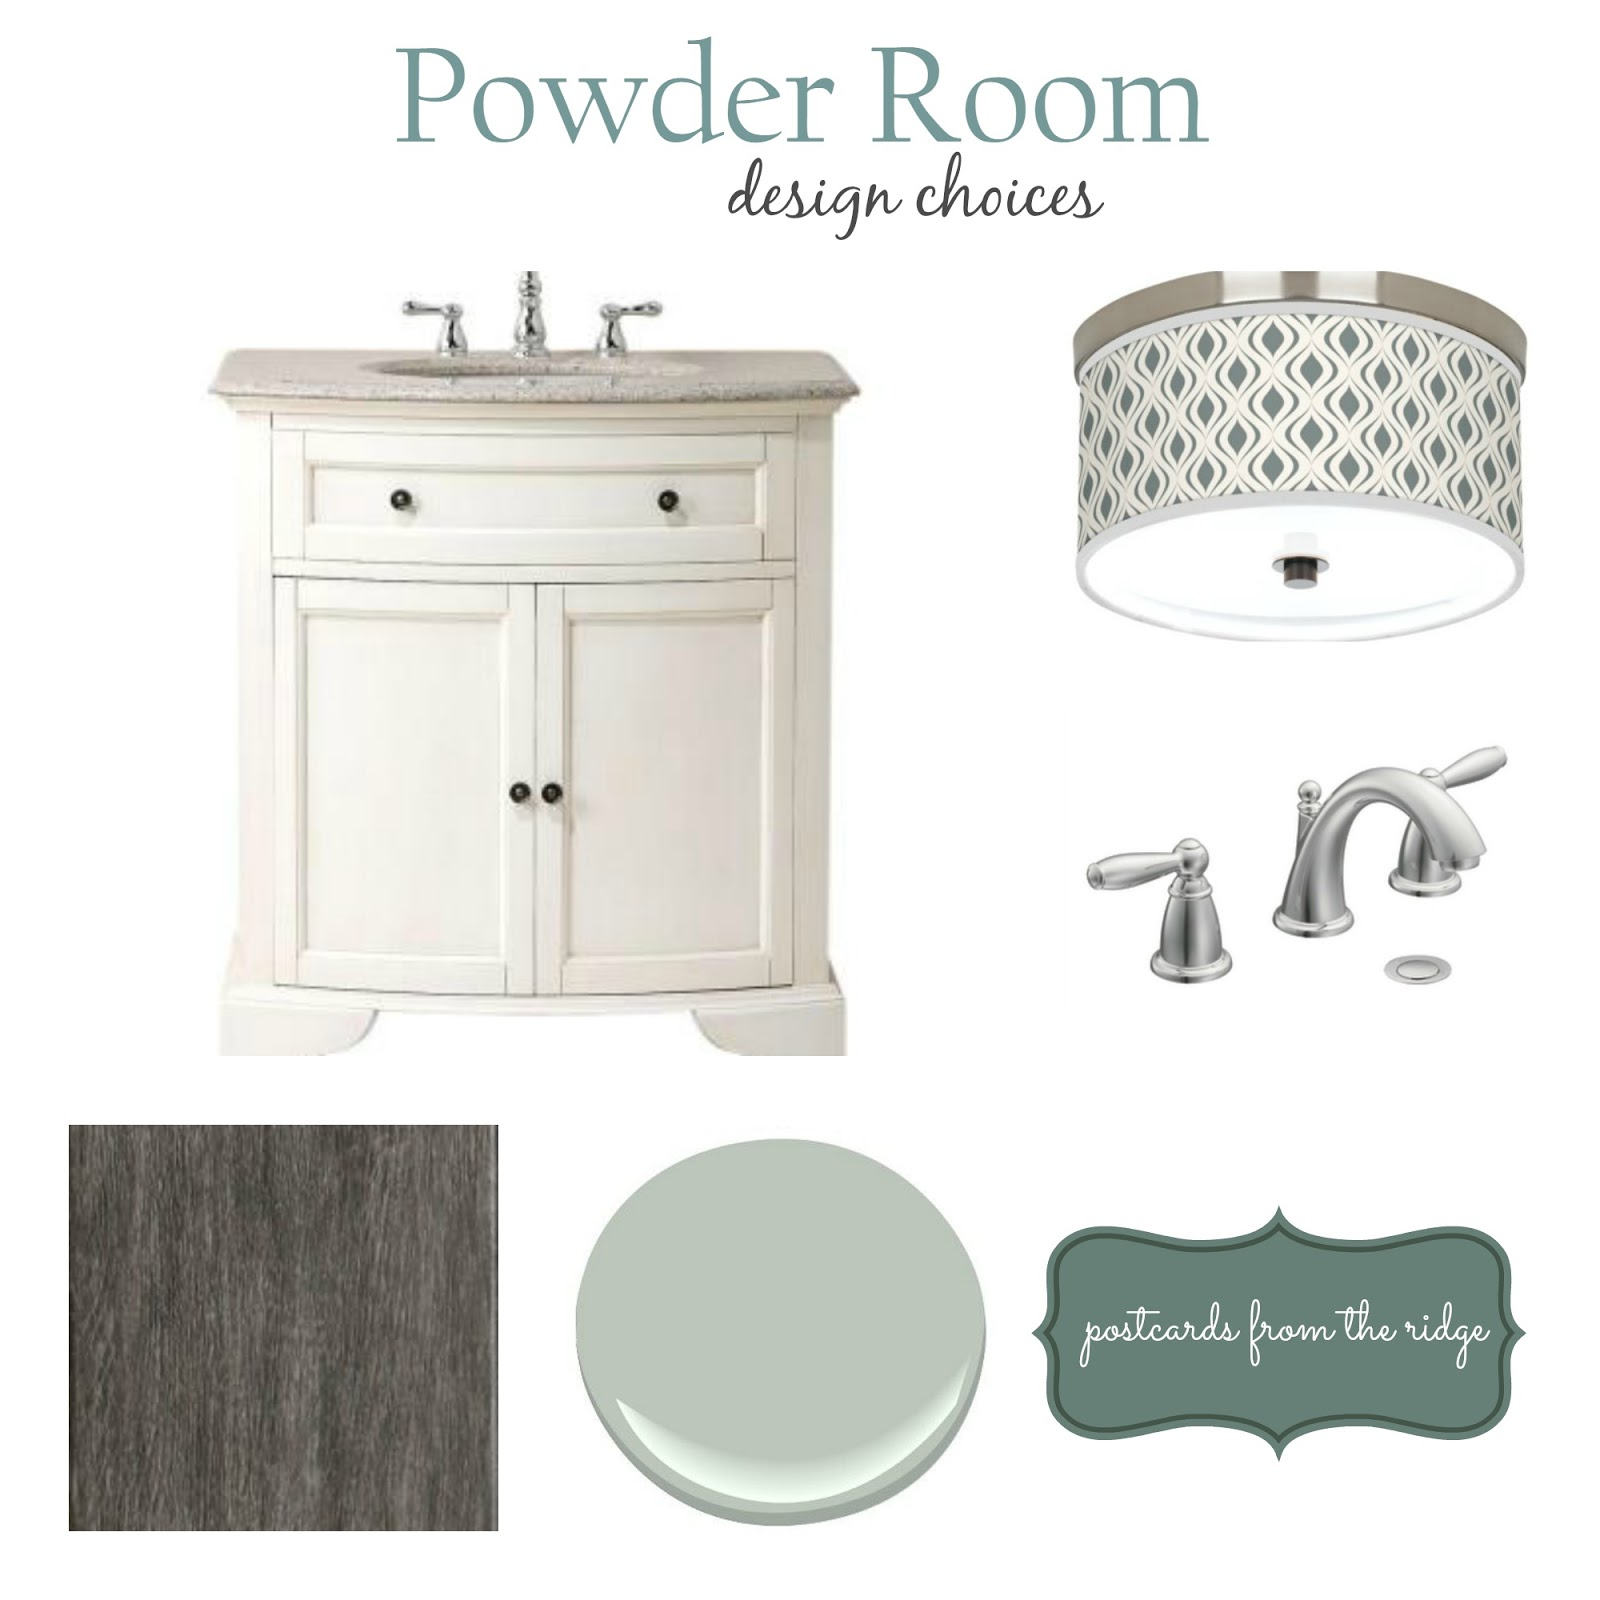 Powder Room Design Choices with spa colors and nickel/silver finishes ~ Postcards from the Ridge